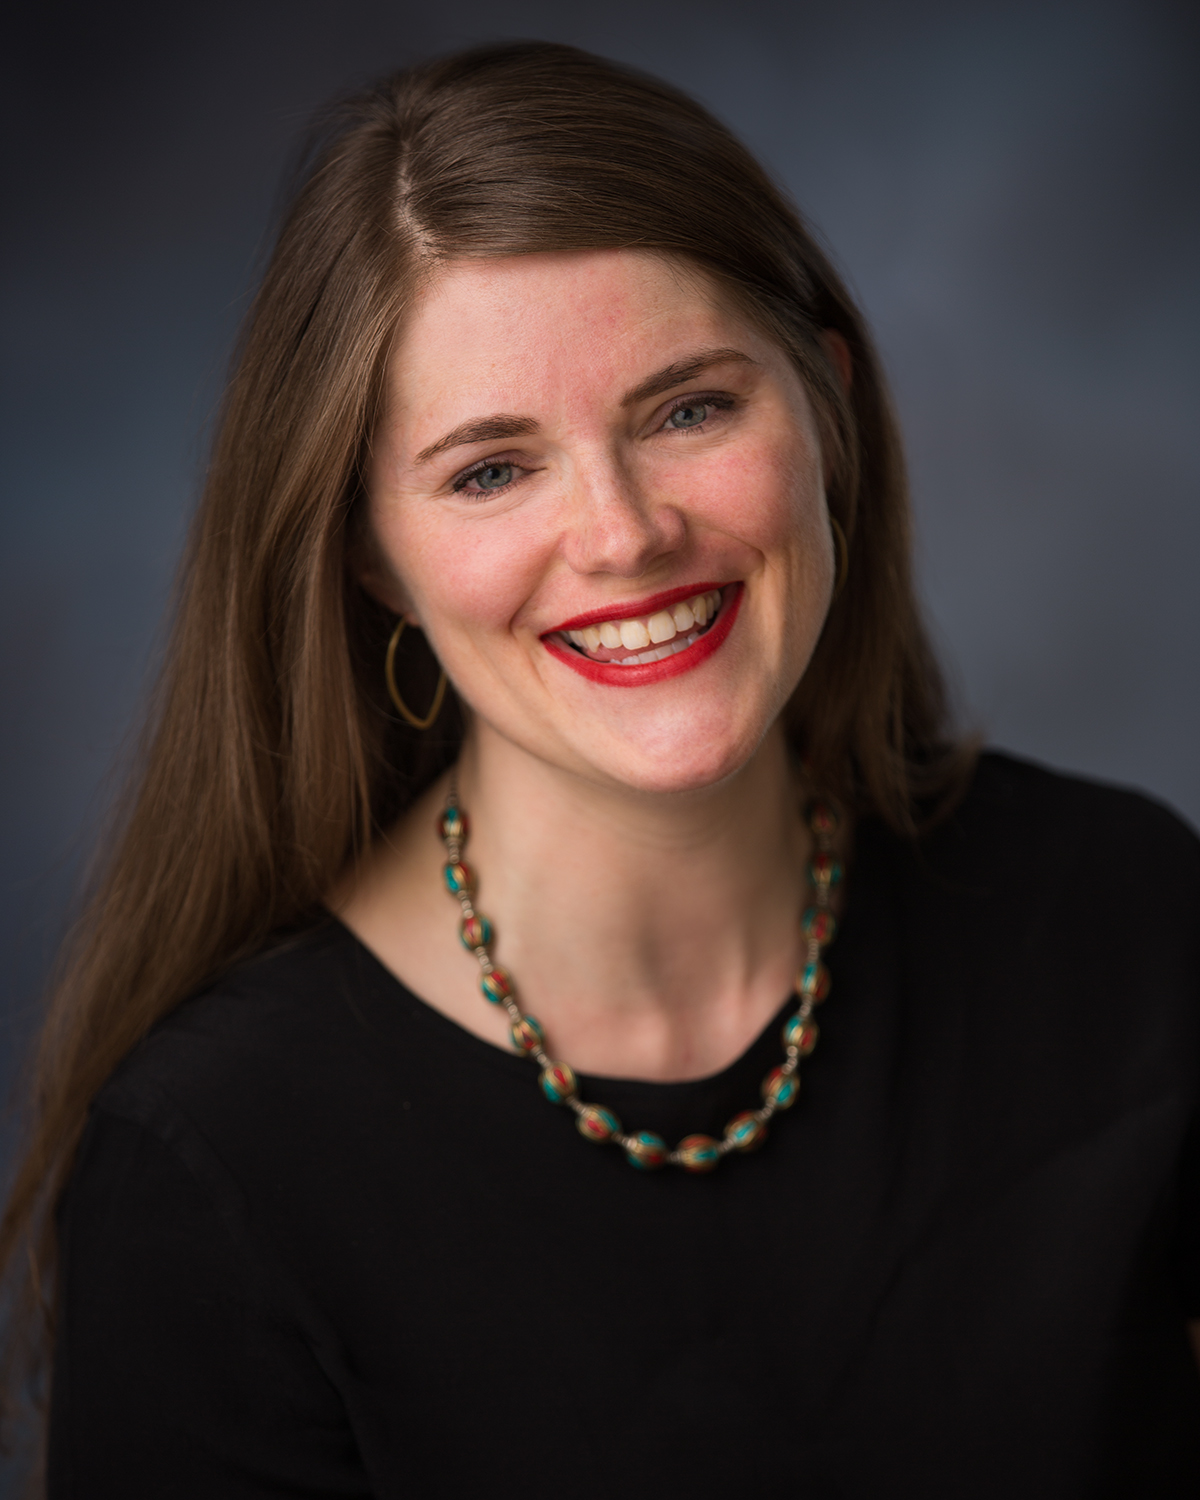 Paige Atkinson, CNM, MN - Nurse-Midwife, Obstetrics and Gynecology, Portland, OR